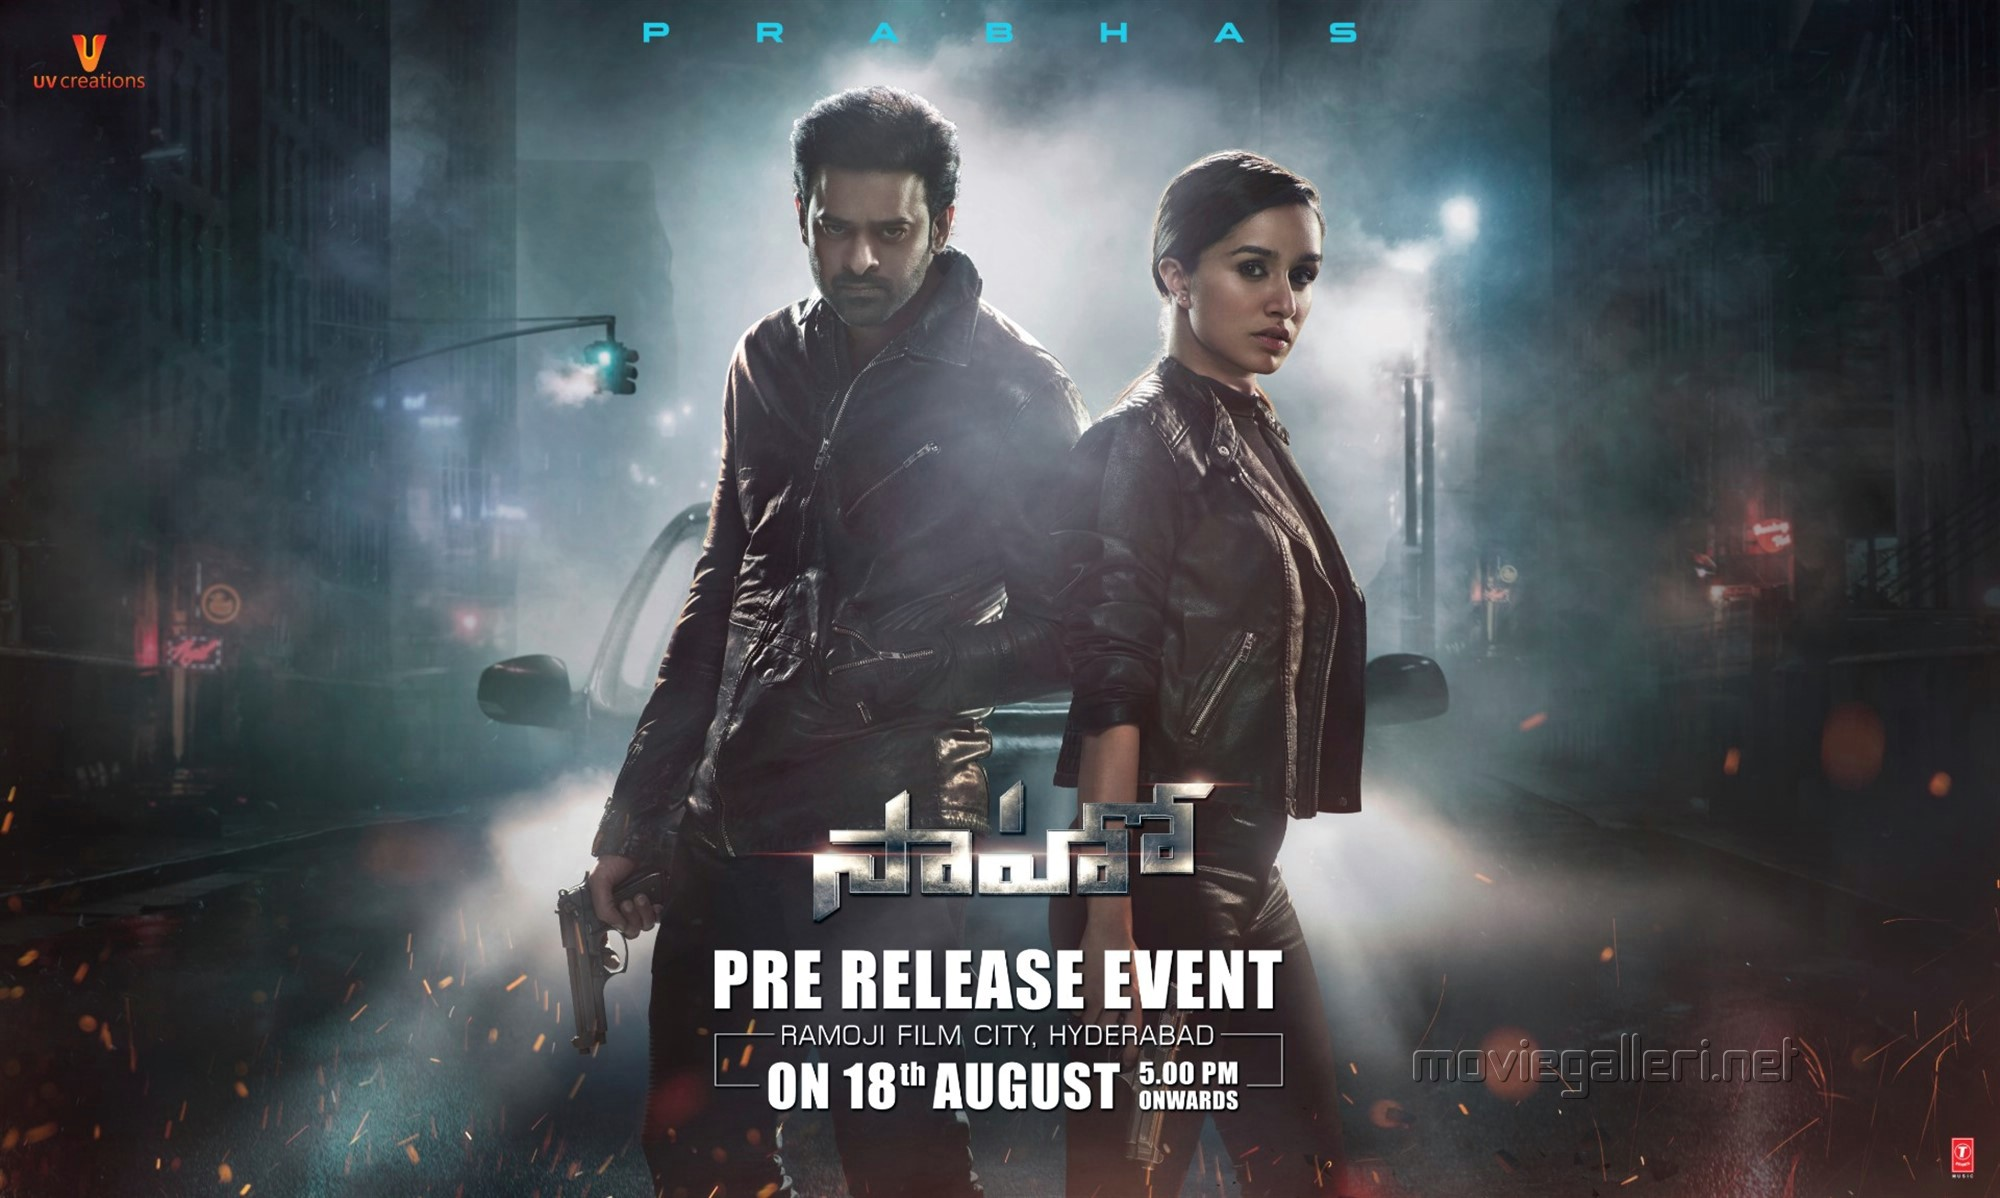 Prabhas Shraddha Kapoor Saaho Pre Release Event on 18th August Wallpapers HD